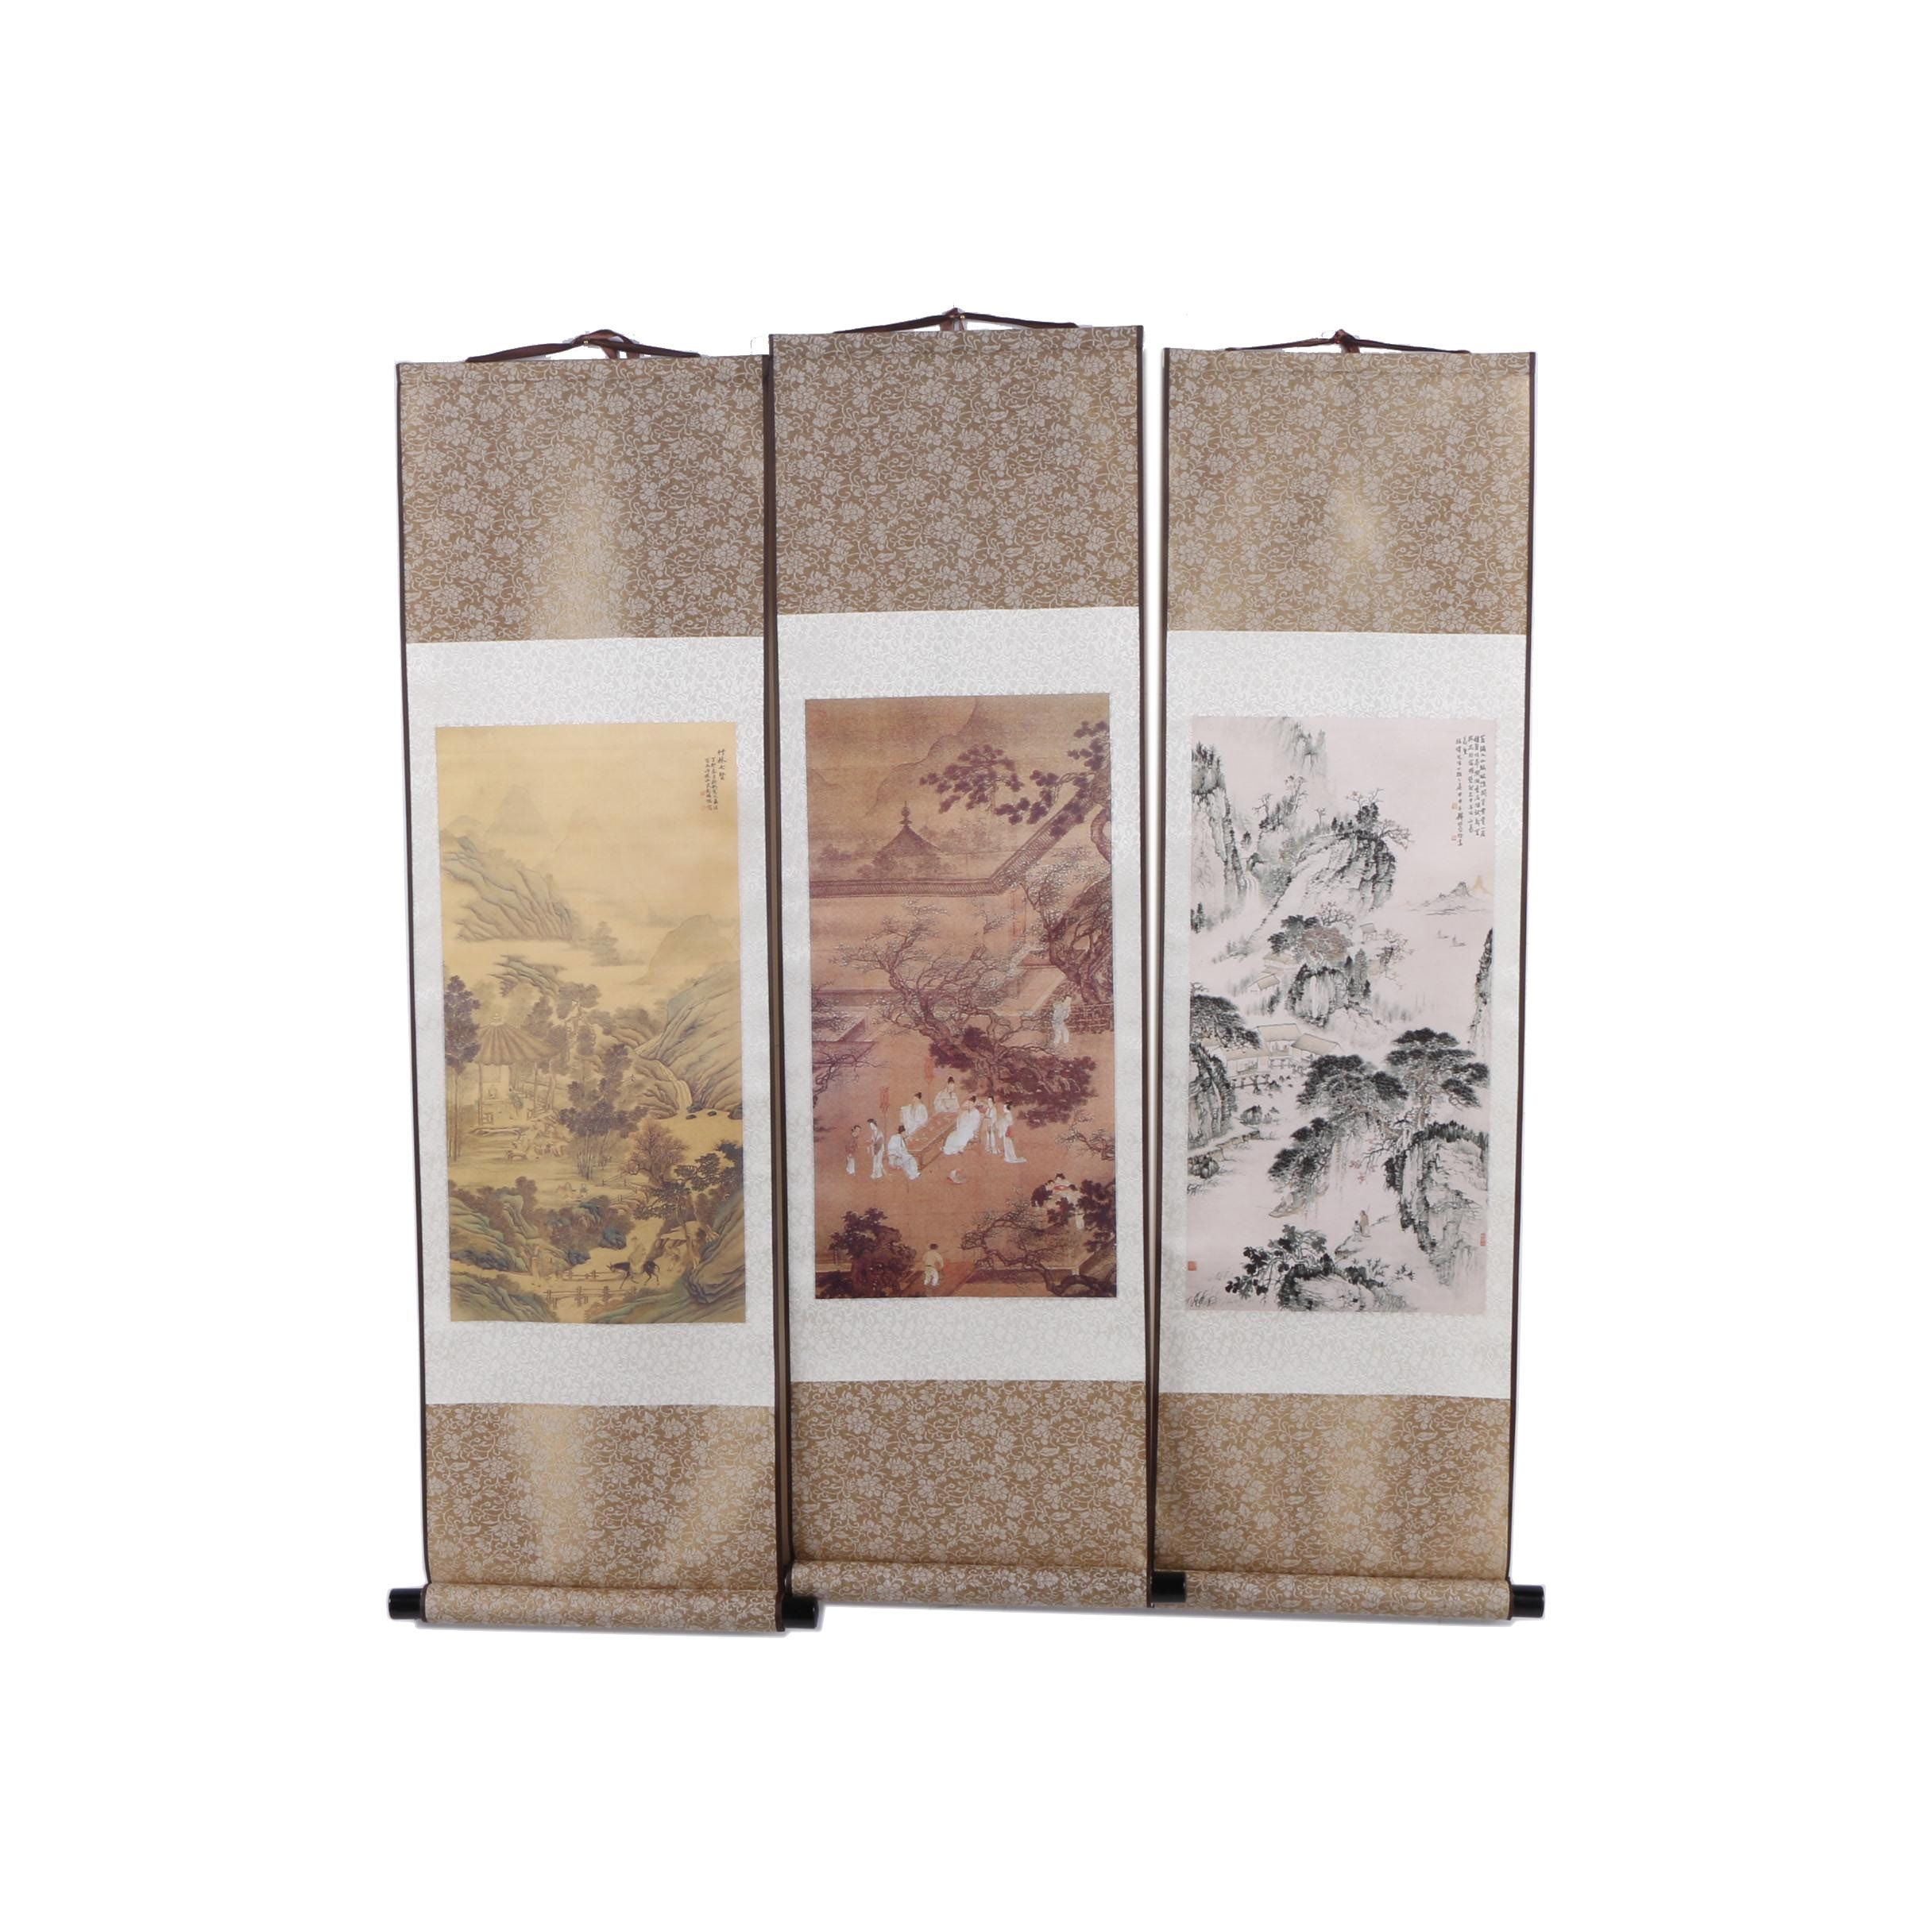 Chinese Giclée Prints on Silk Hanging Scrolls